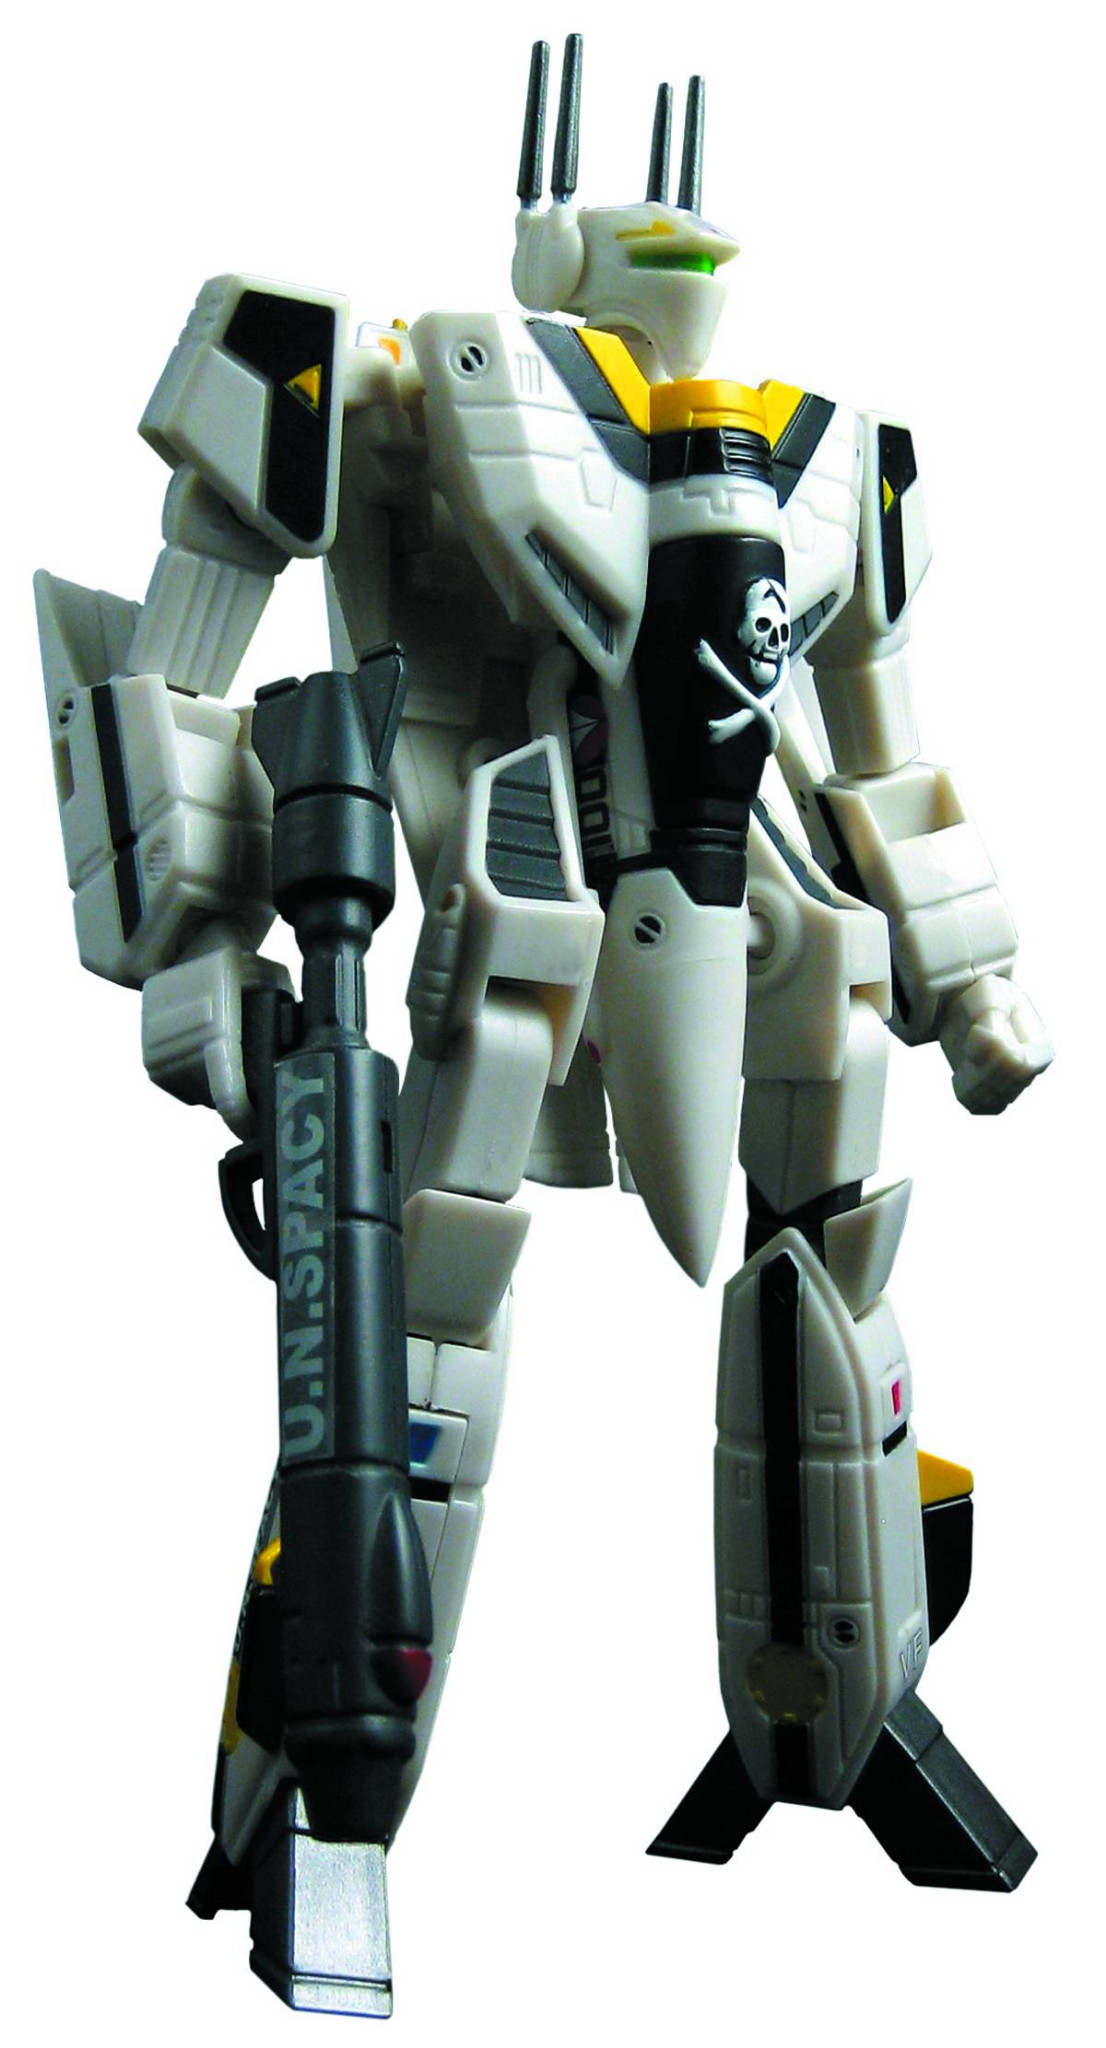 Robotech Roy Fokker VF-1S Transformable Veritech Fighter Action Figure